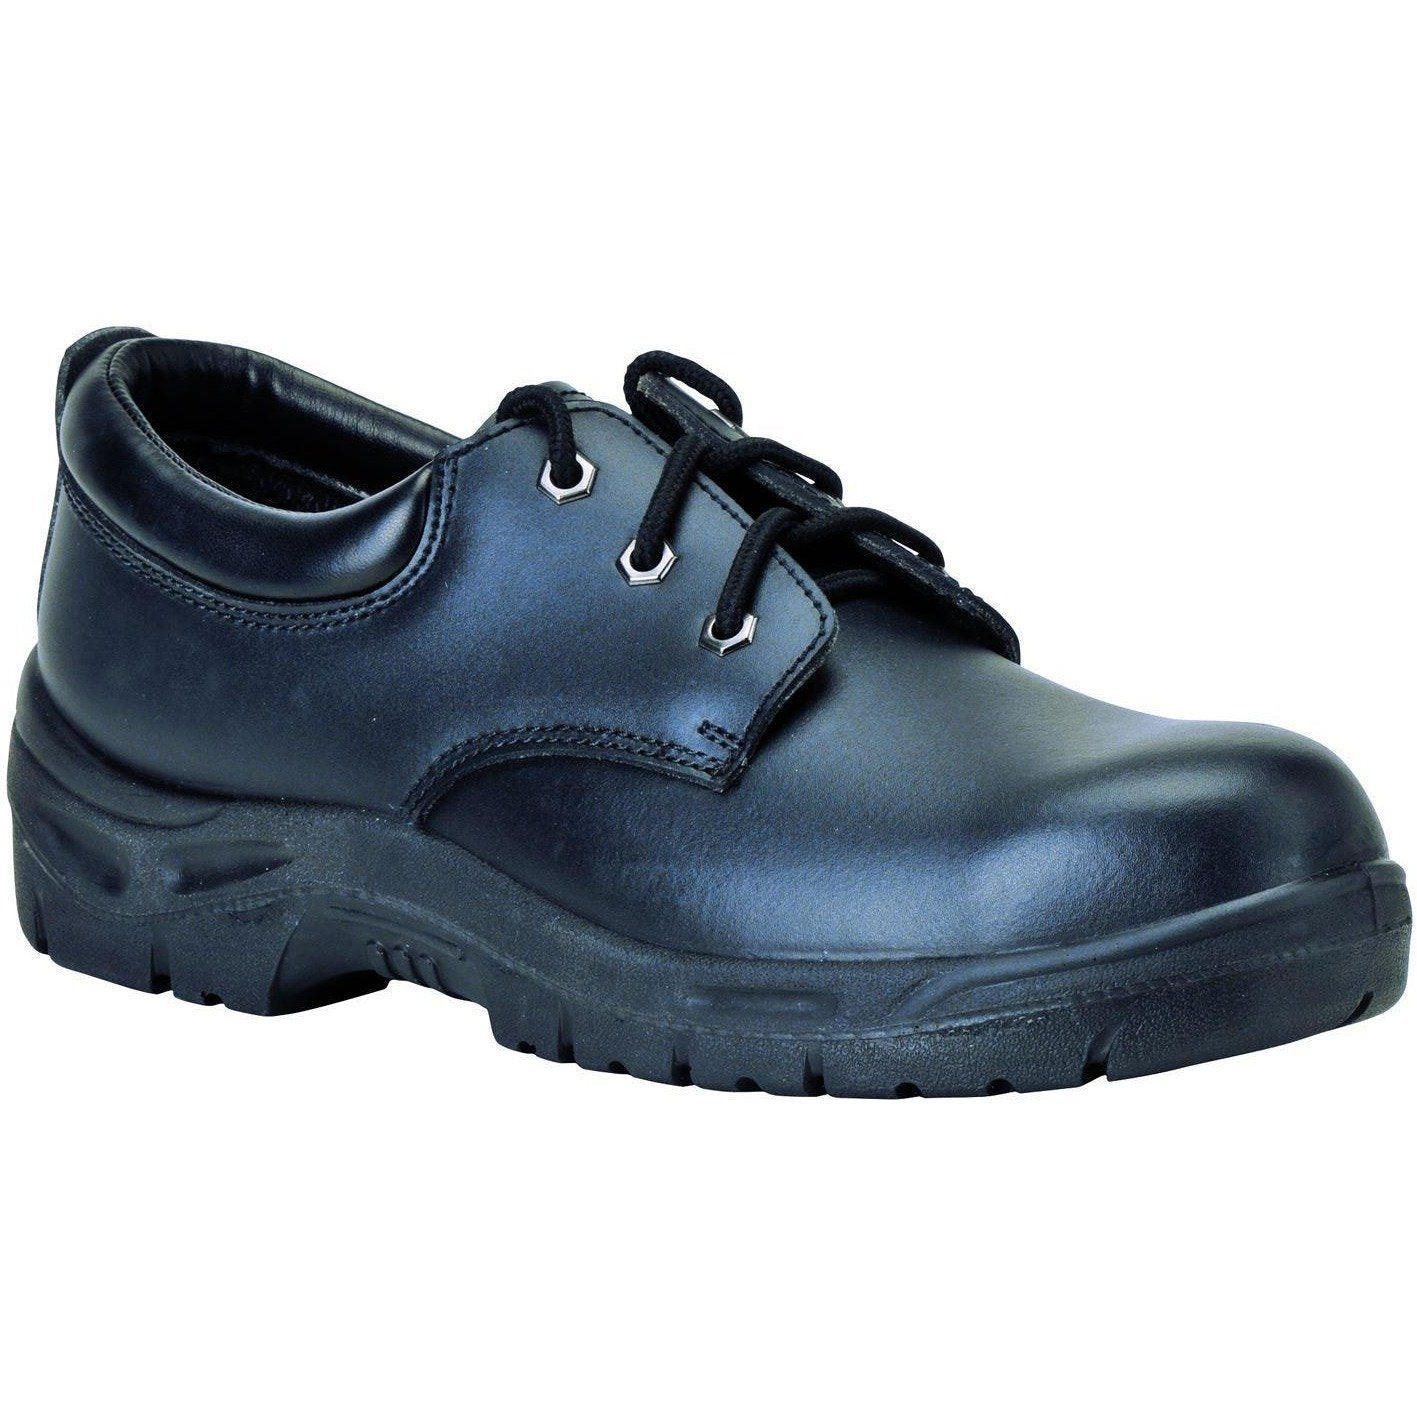 Portwest Steelite Shoe S3 FW04 - reid outdoors